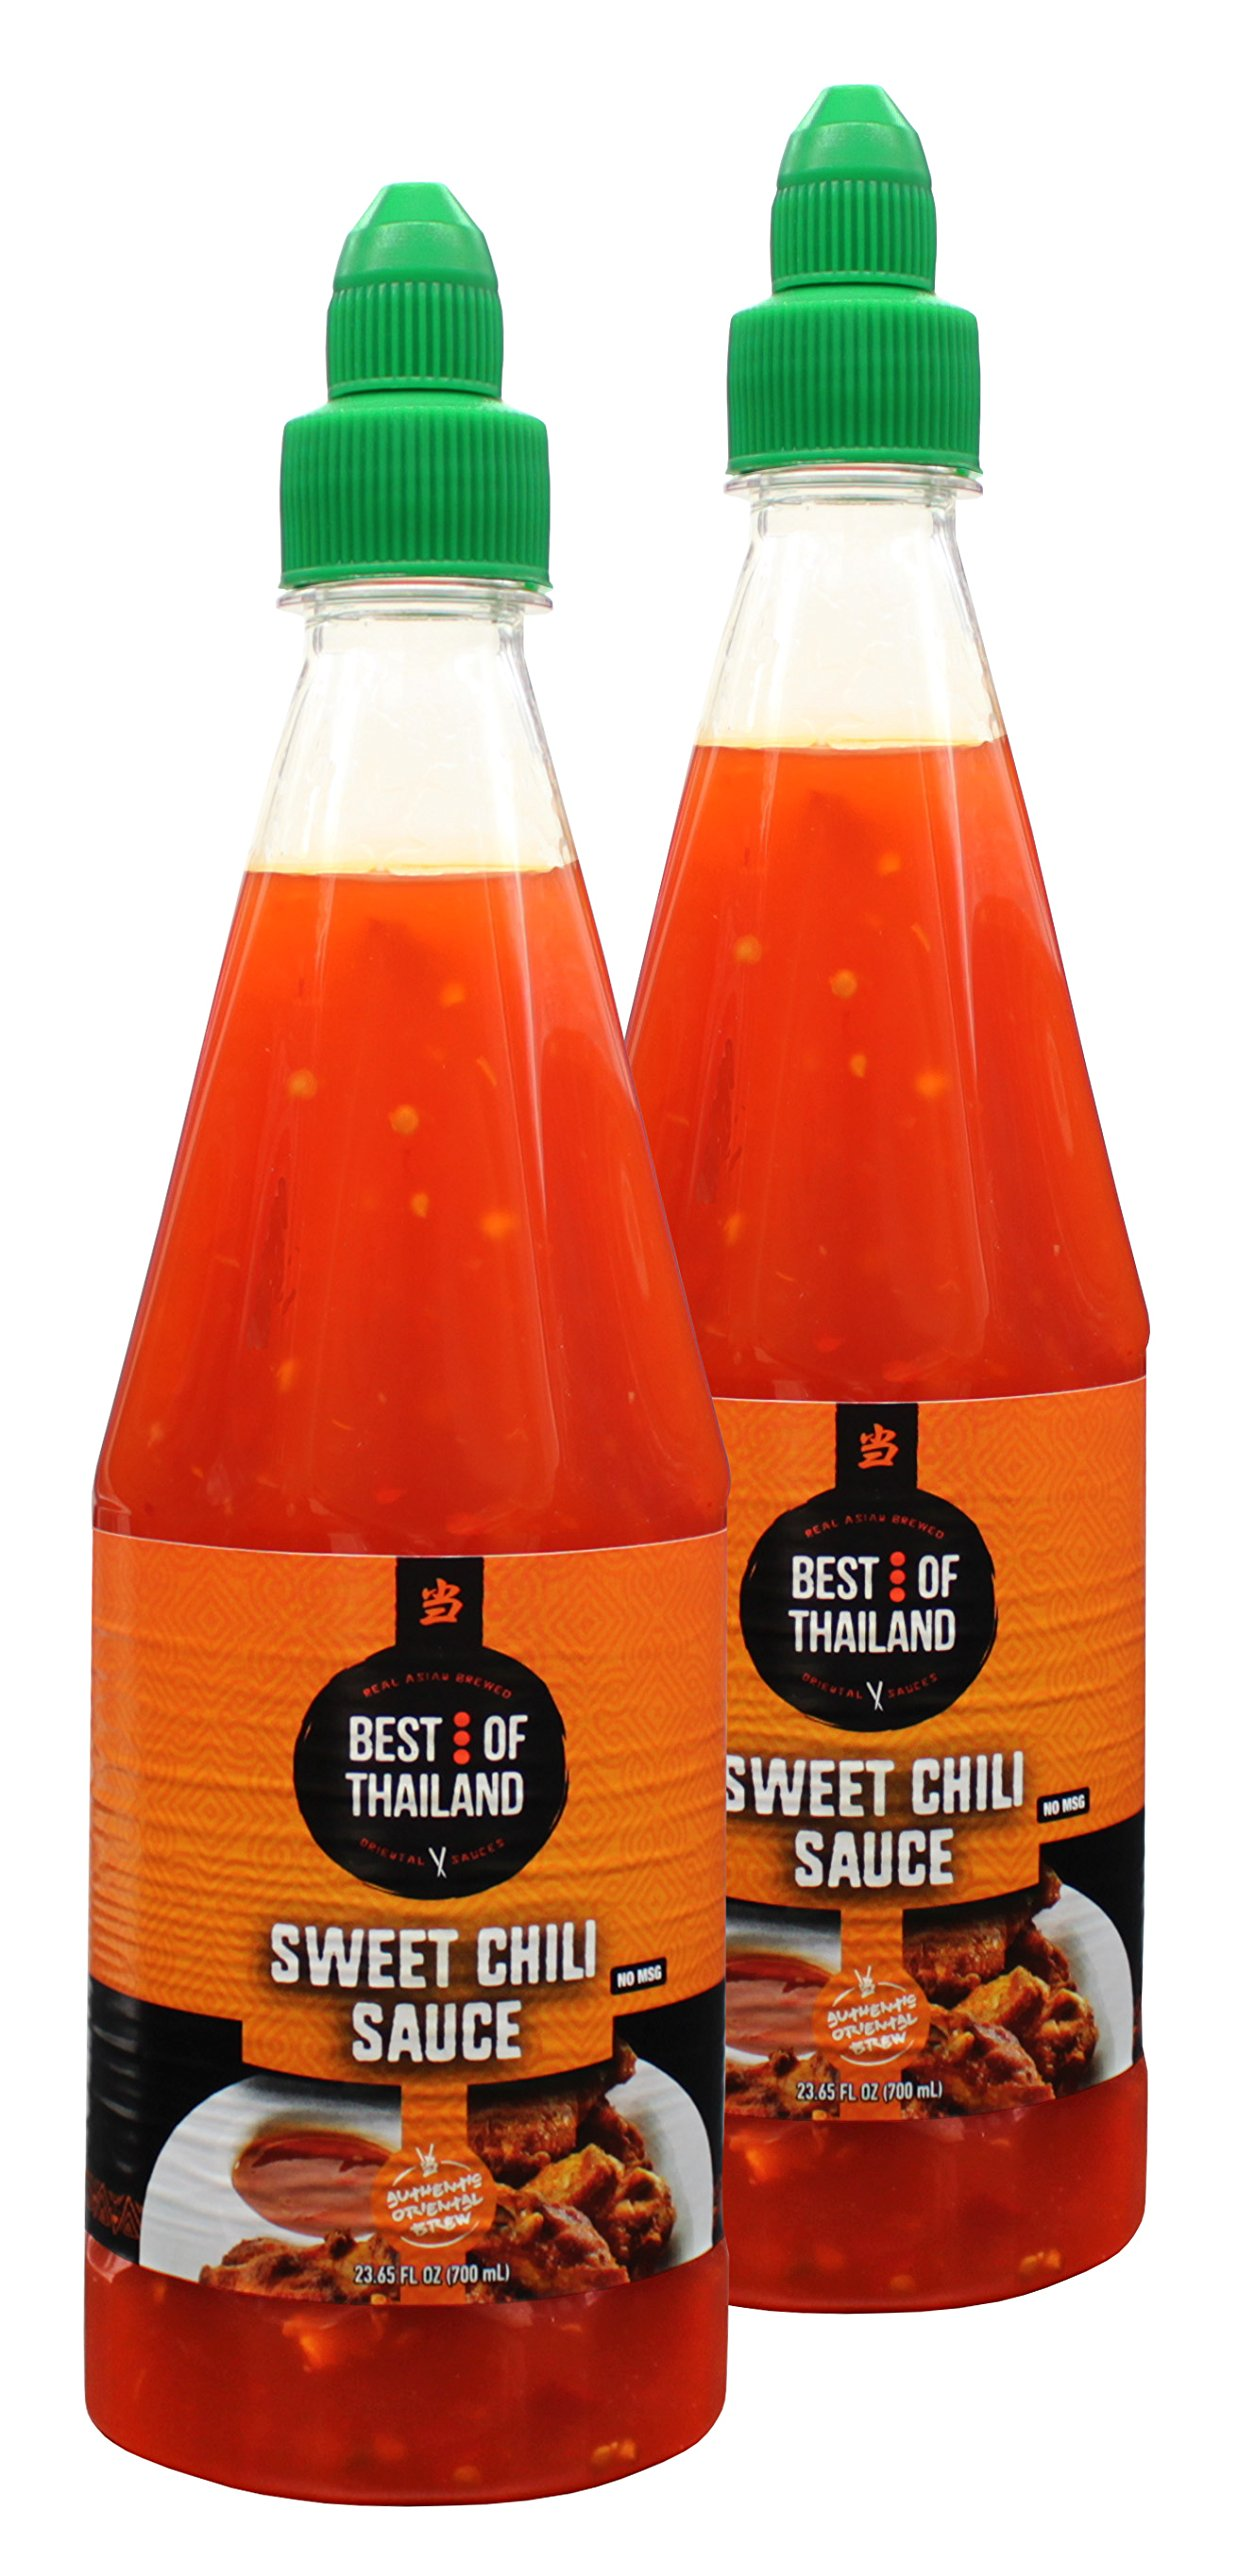 Sweet Chili Sauce (2 Pack) Real Asian Brewed – No MSG – Kosher Certified – Sweet & Spicy Dressing for Barbeque Chicken, Grilled Food, Fish, Meat – Convenient Bottle Size: 23.6 fl-oz – Best of Thailand by Best of Thailand (Image #1)